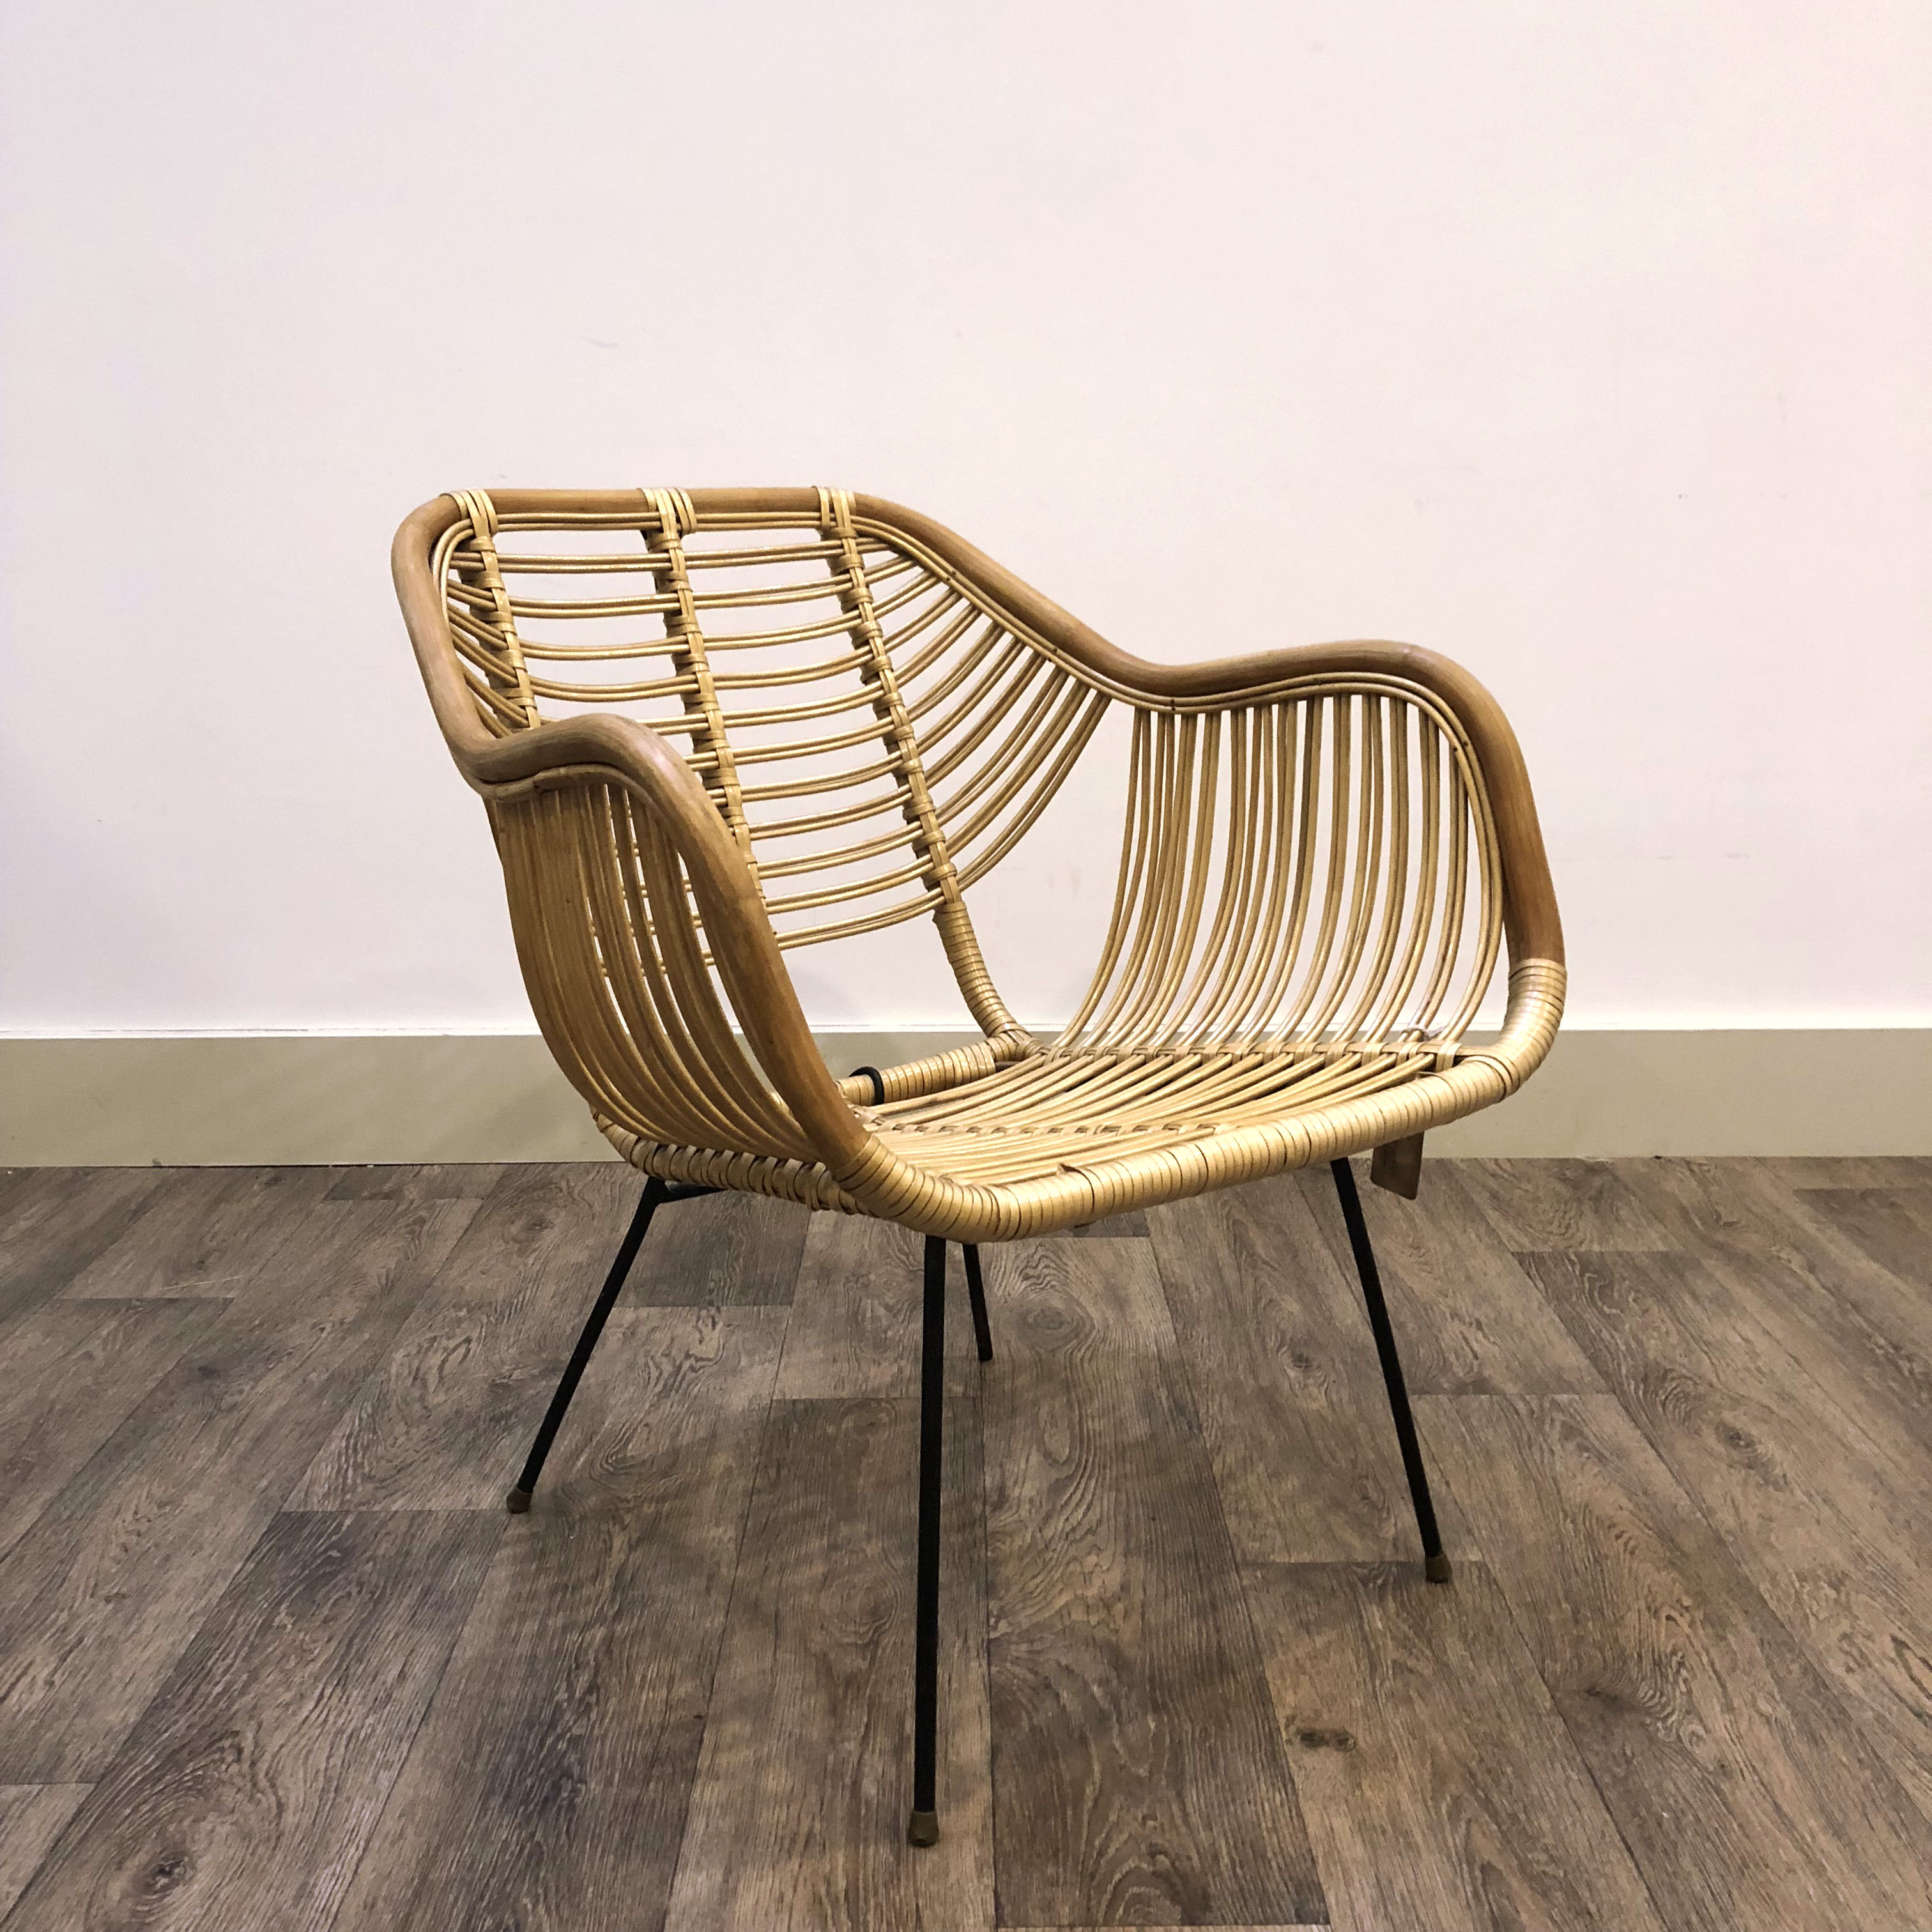 French Bamboo chair